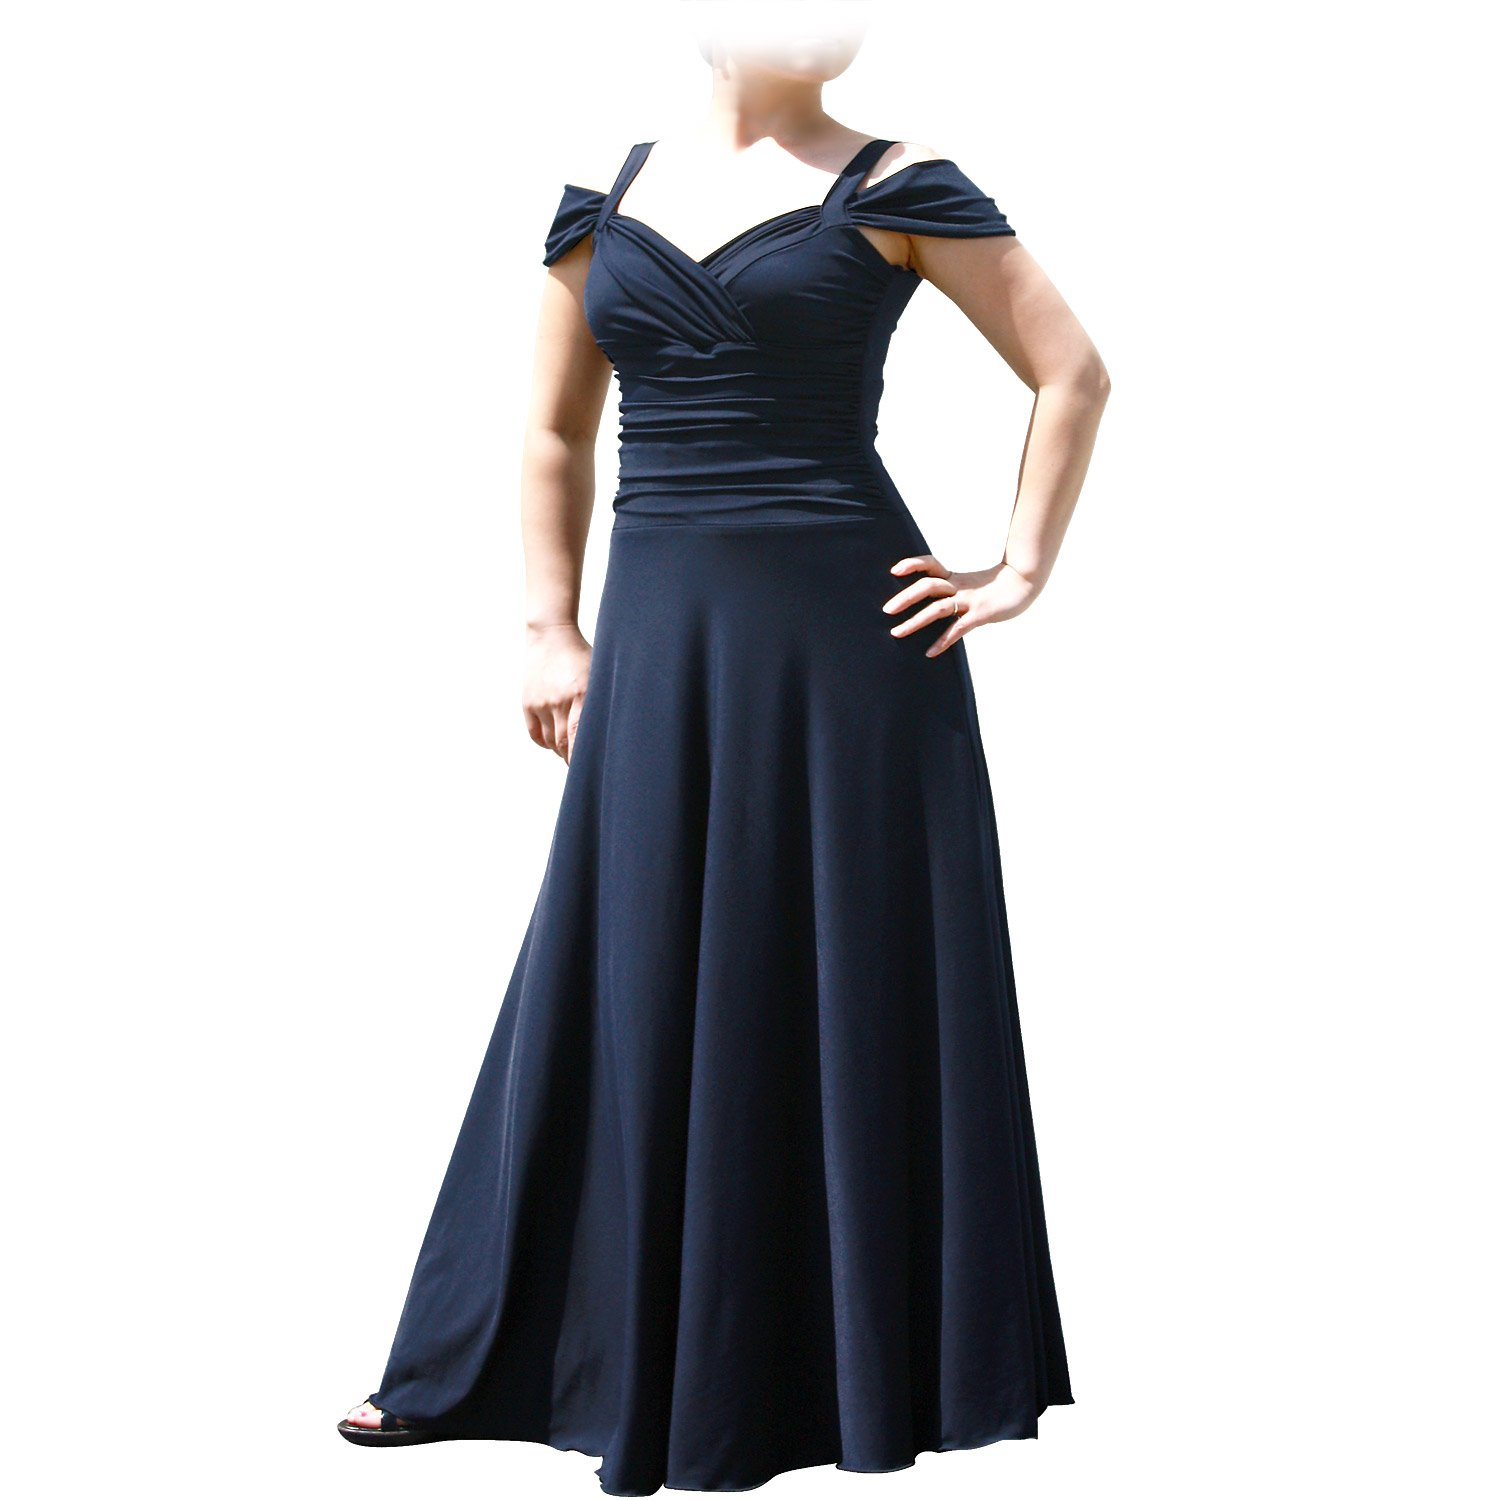 EVANESE Women's Plus Size Elegant Long Formal Evening Dress with Shoulder bands D86171